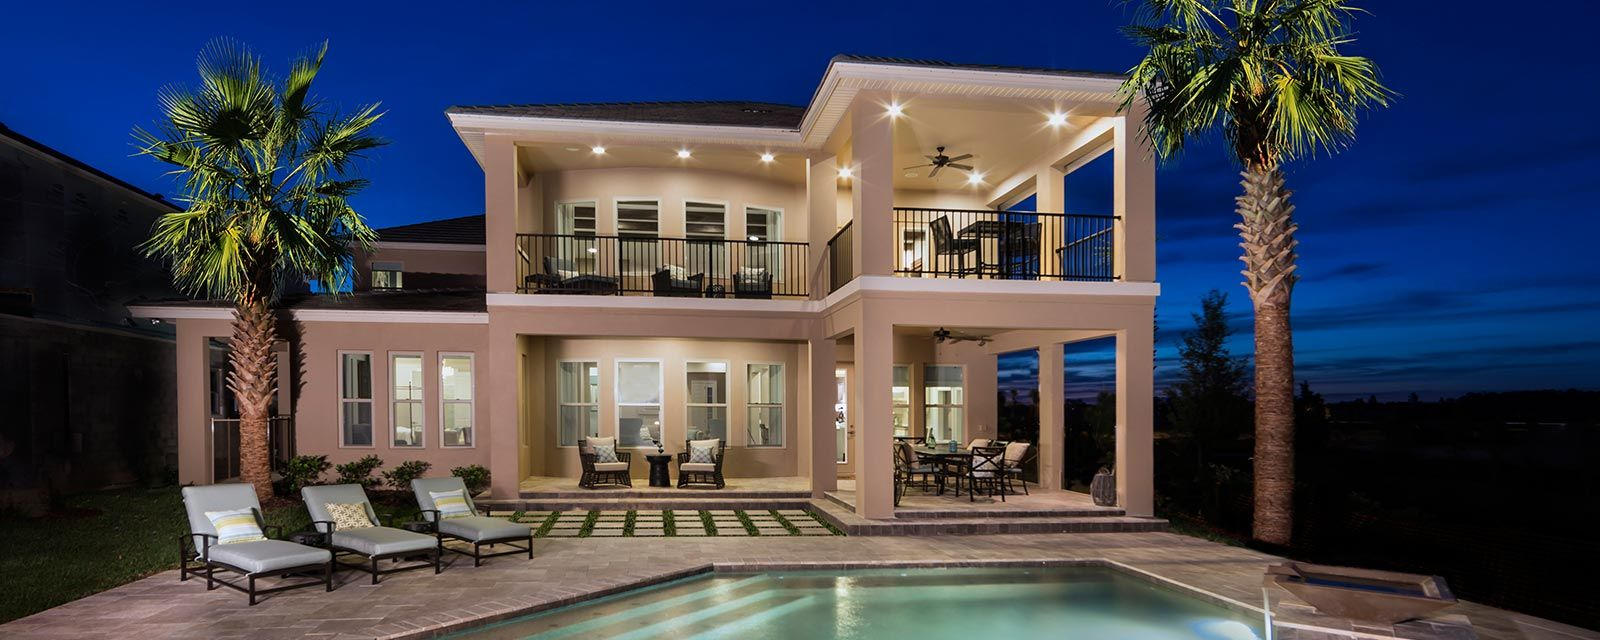 Independence Estates new homes in Winter Garden FL by Ashton Woods Homes